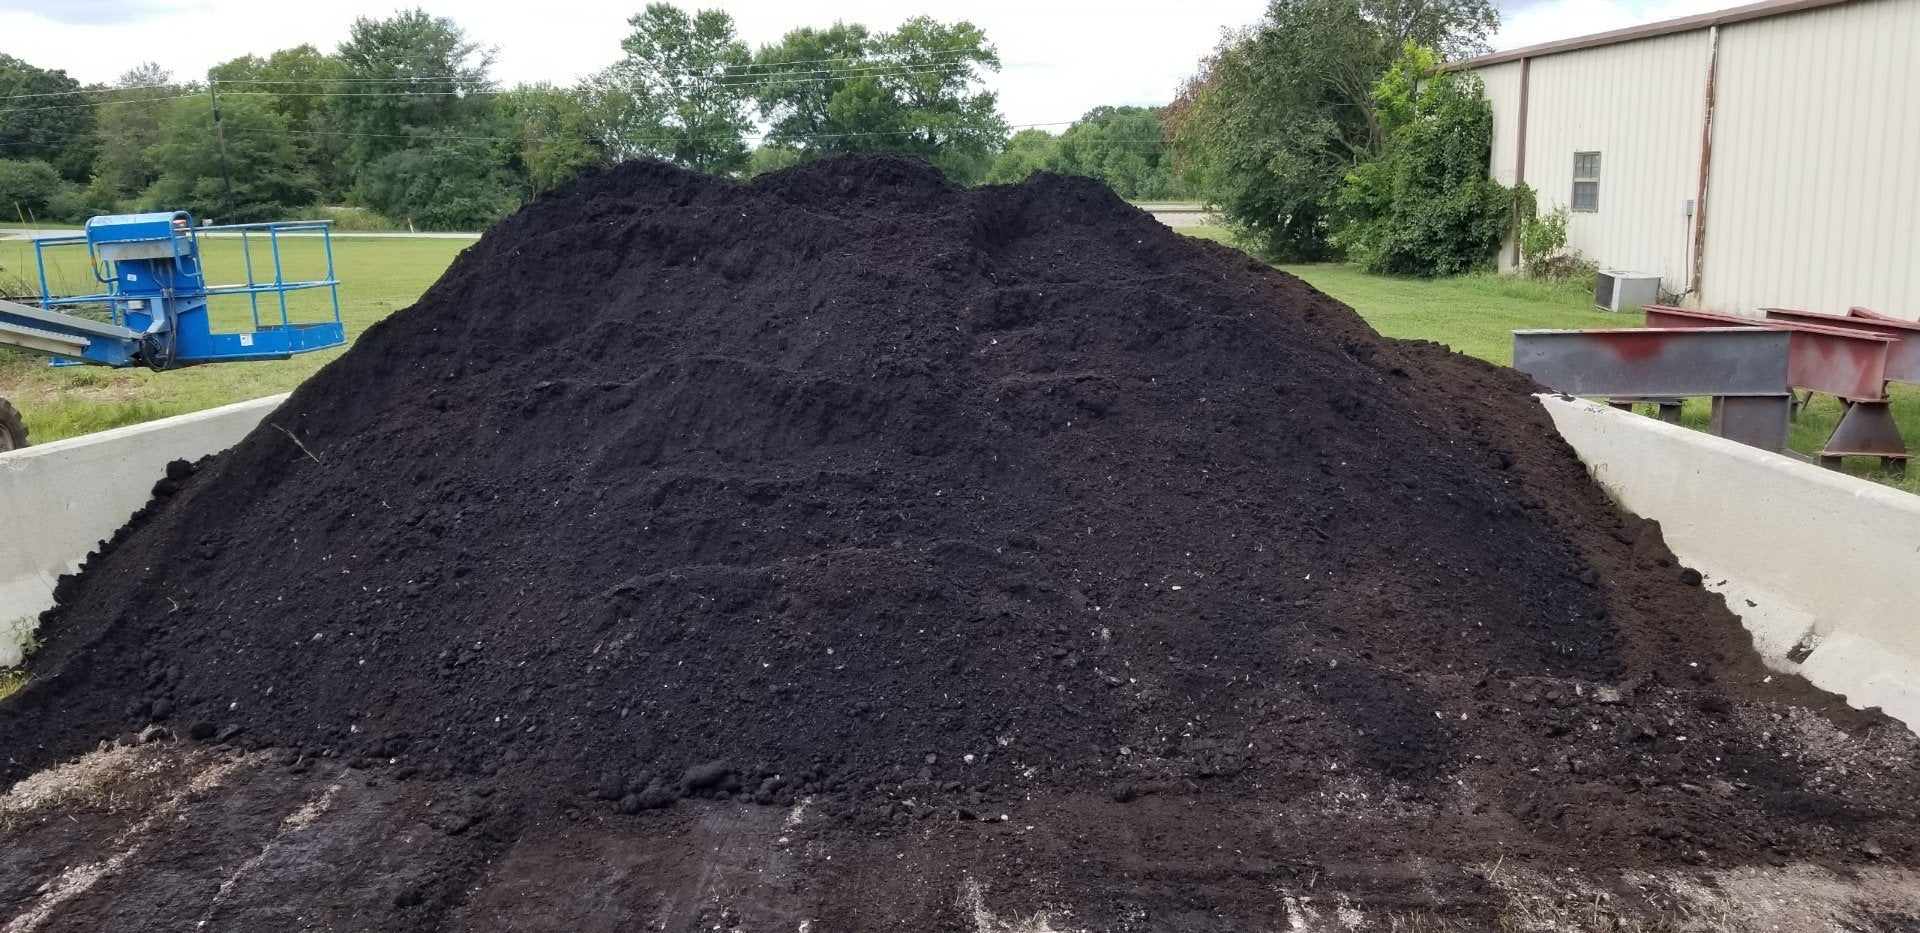 1/2 Yard Scoop - Food Waste Compost - Residential Rate